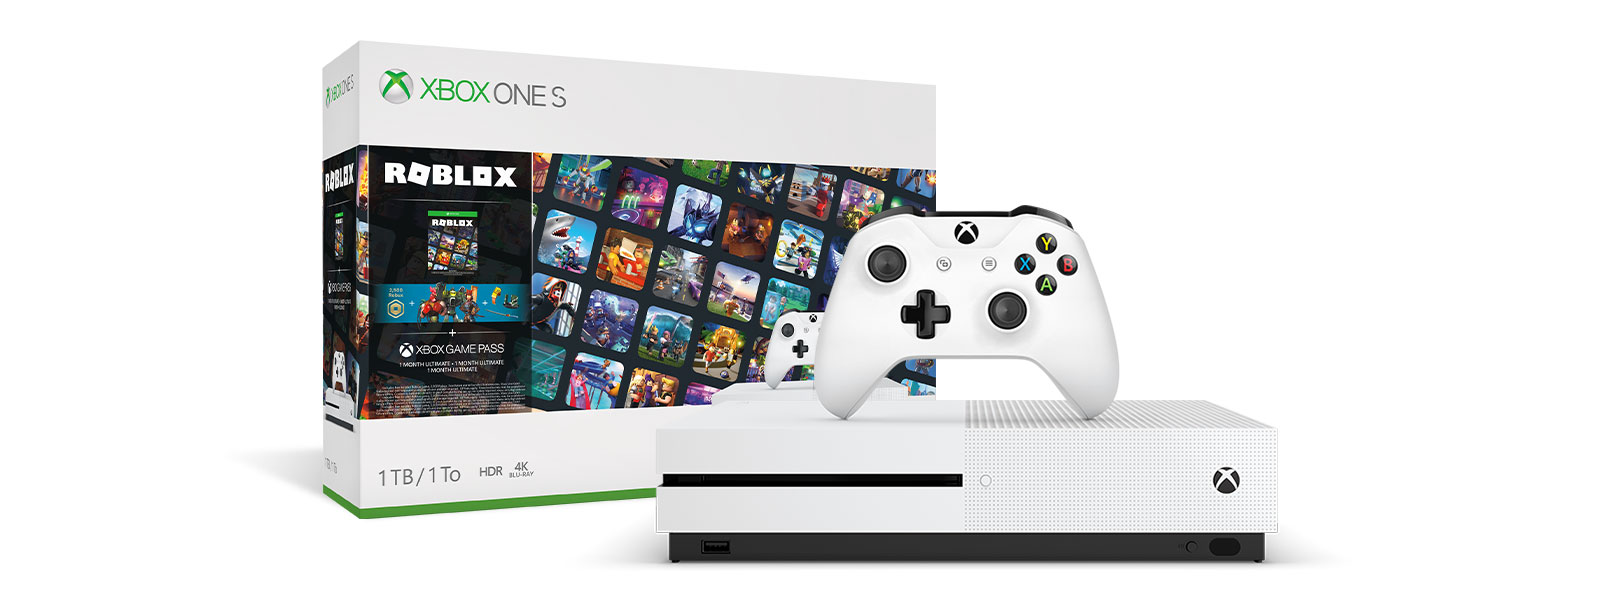 Xbox One S Roblox Bundle-Produktbox und Xbox One S